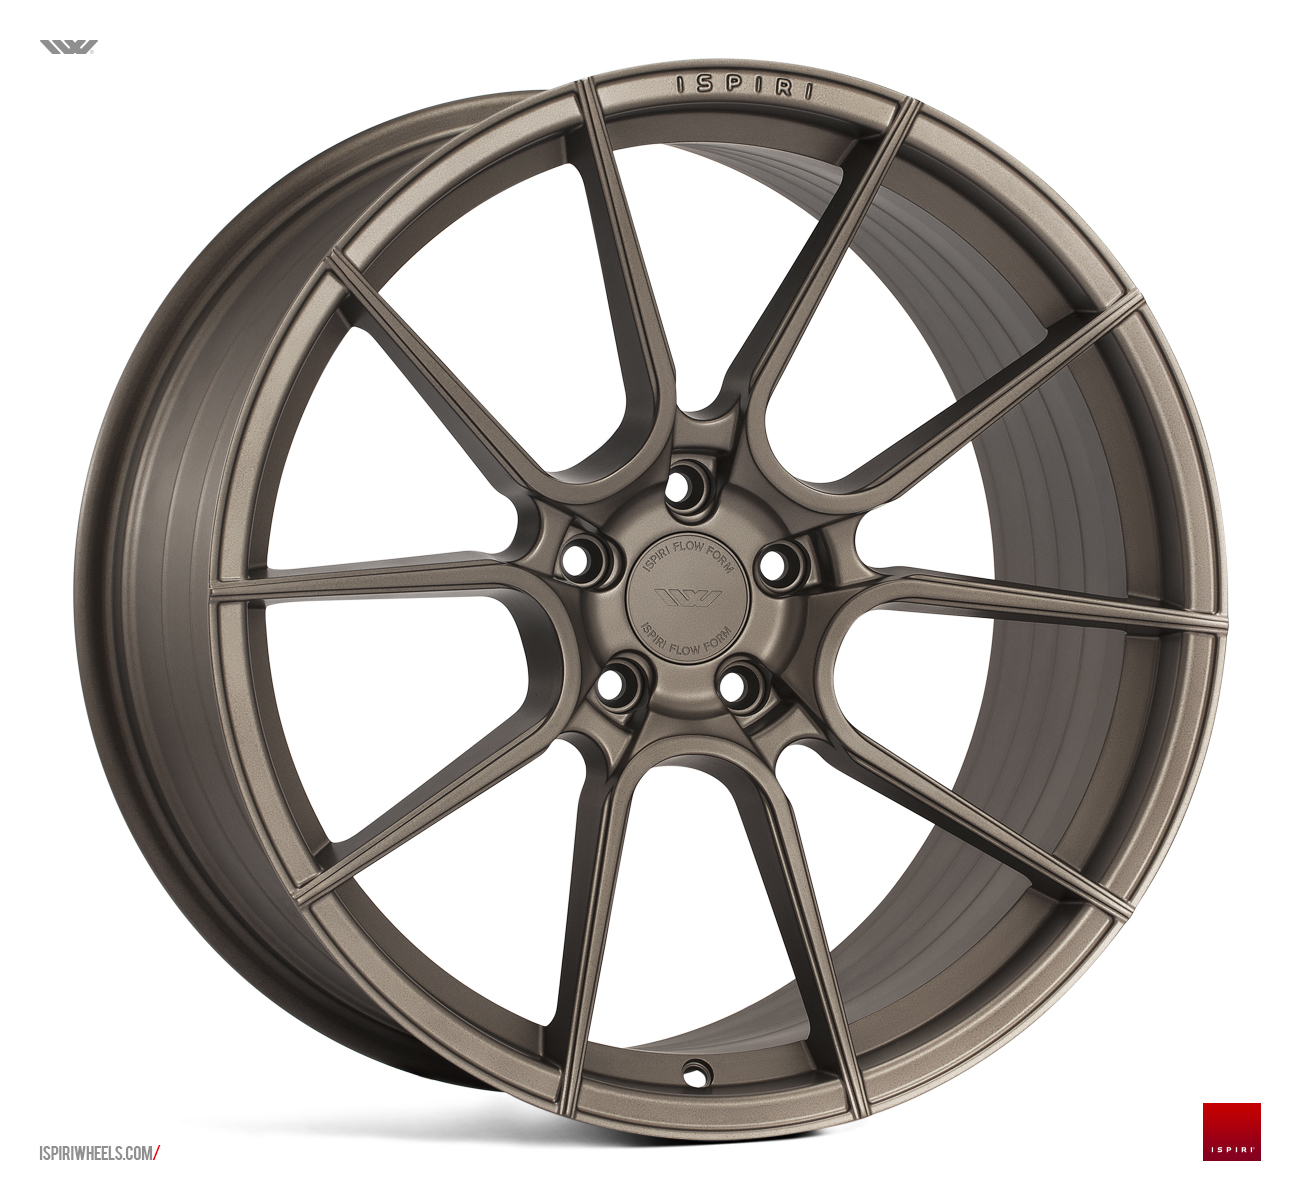 "NEW 20"" ISPIRI FFR6 TWIN 5 SPOKE ALLOYS IN MATT CARBON BRONZE, WIDER 10"" or 10.5"" REAR"